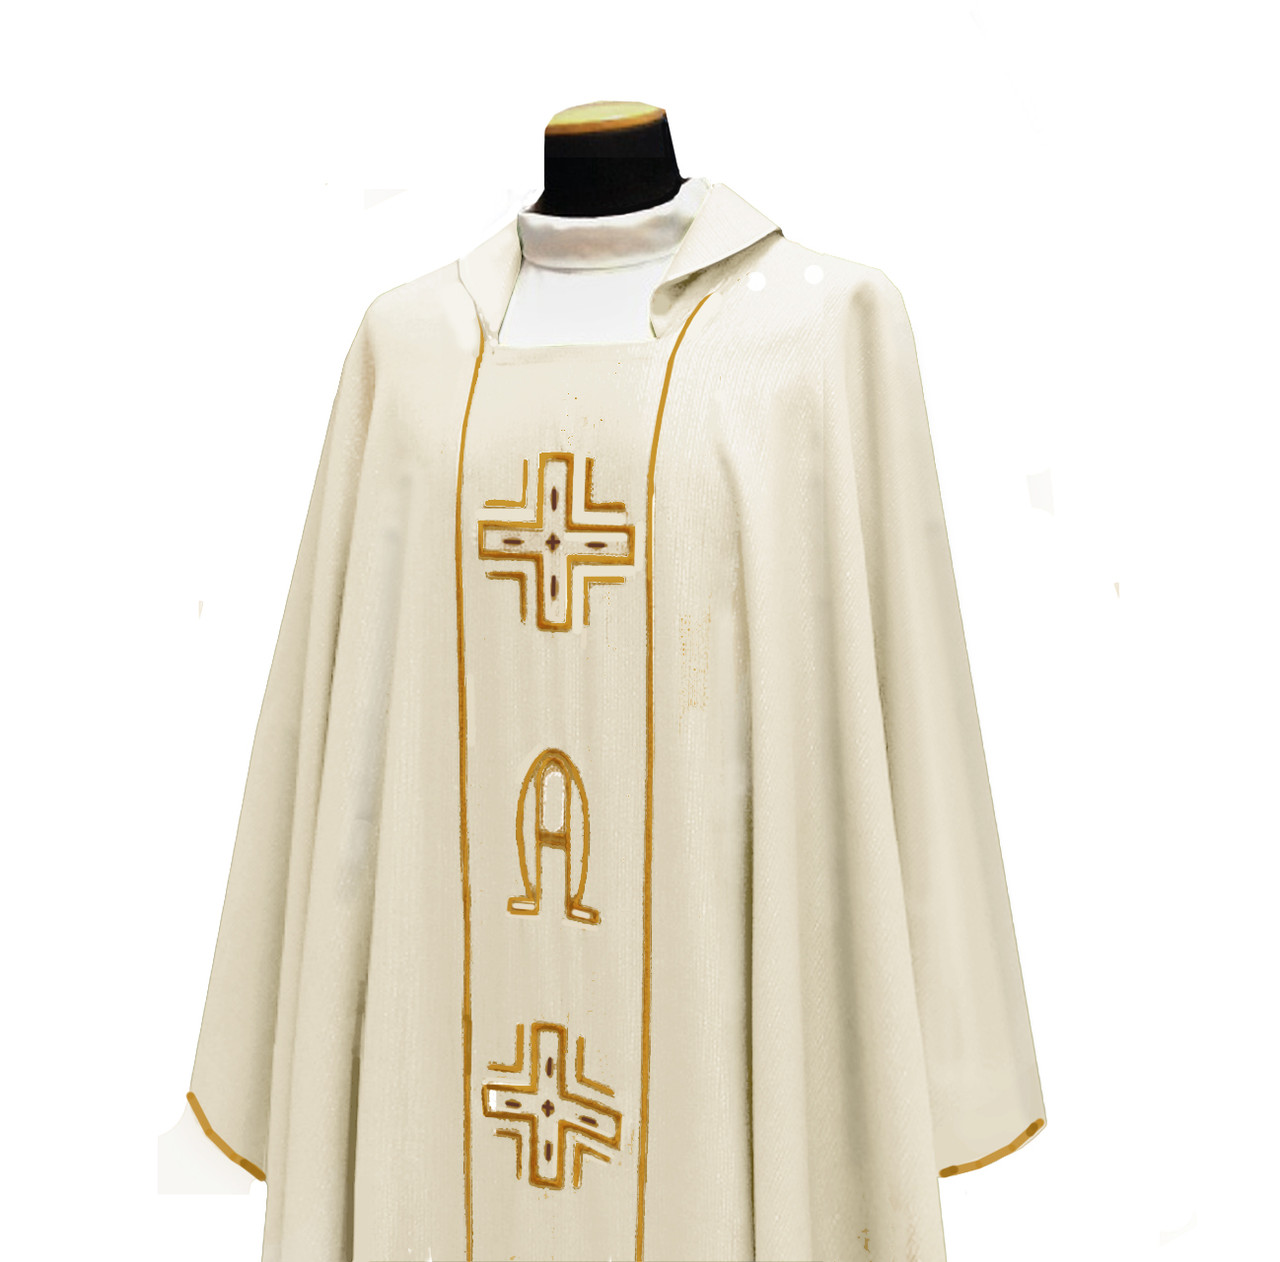 634 Chasuble in Lana Barre